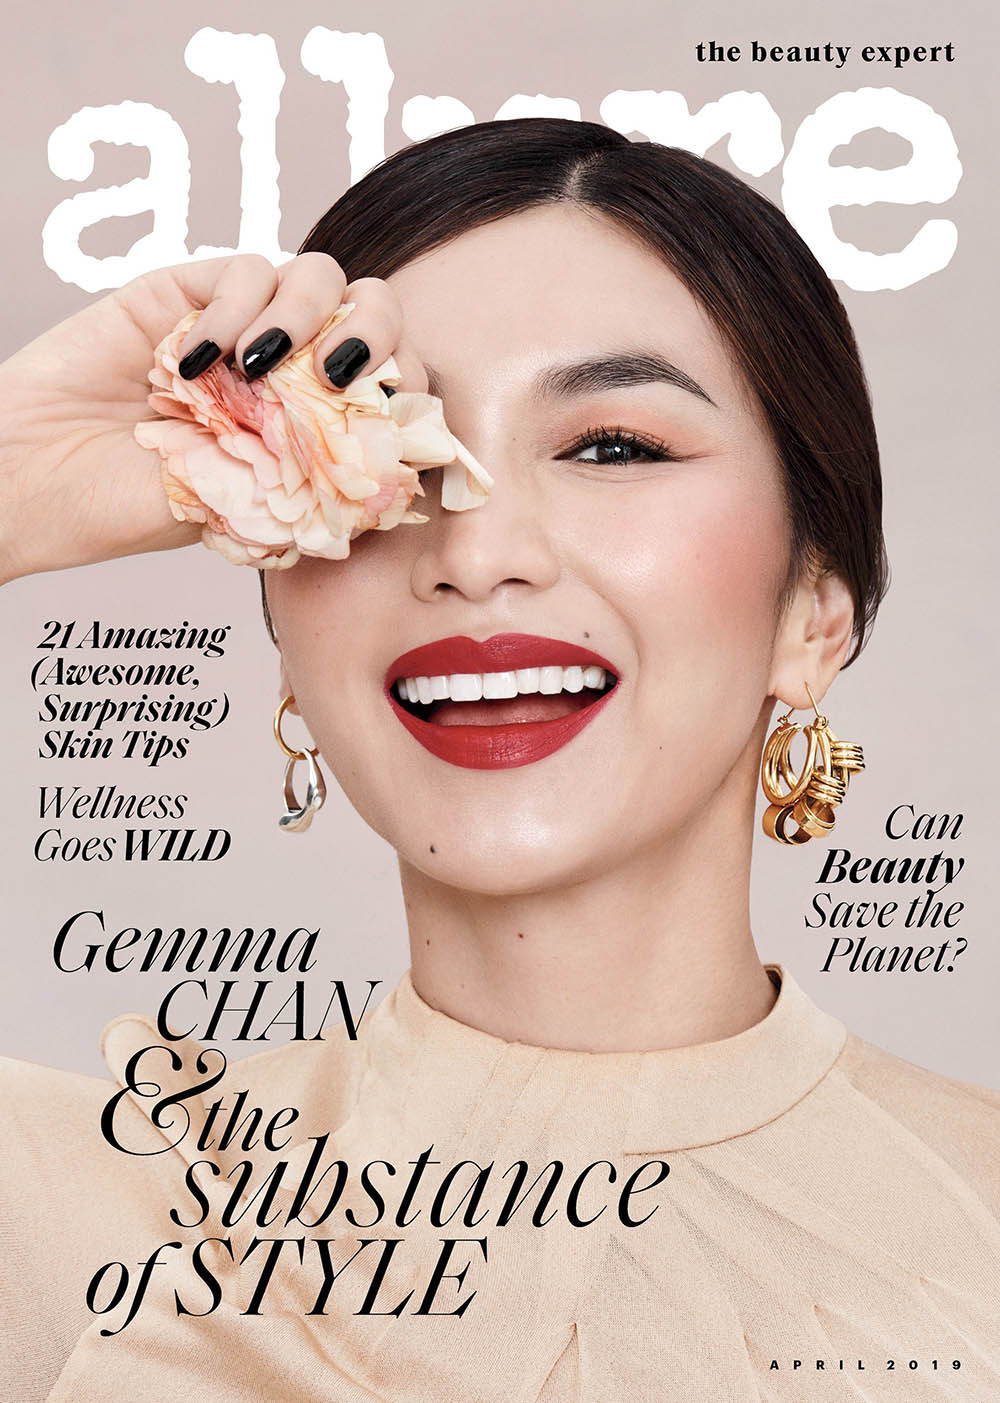 Gemma Chan covers Allure US April 2019 by Paola Kudacki